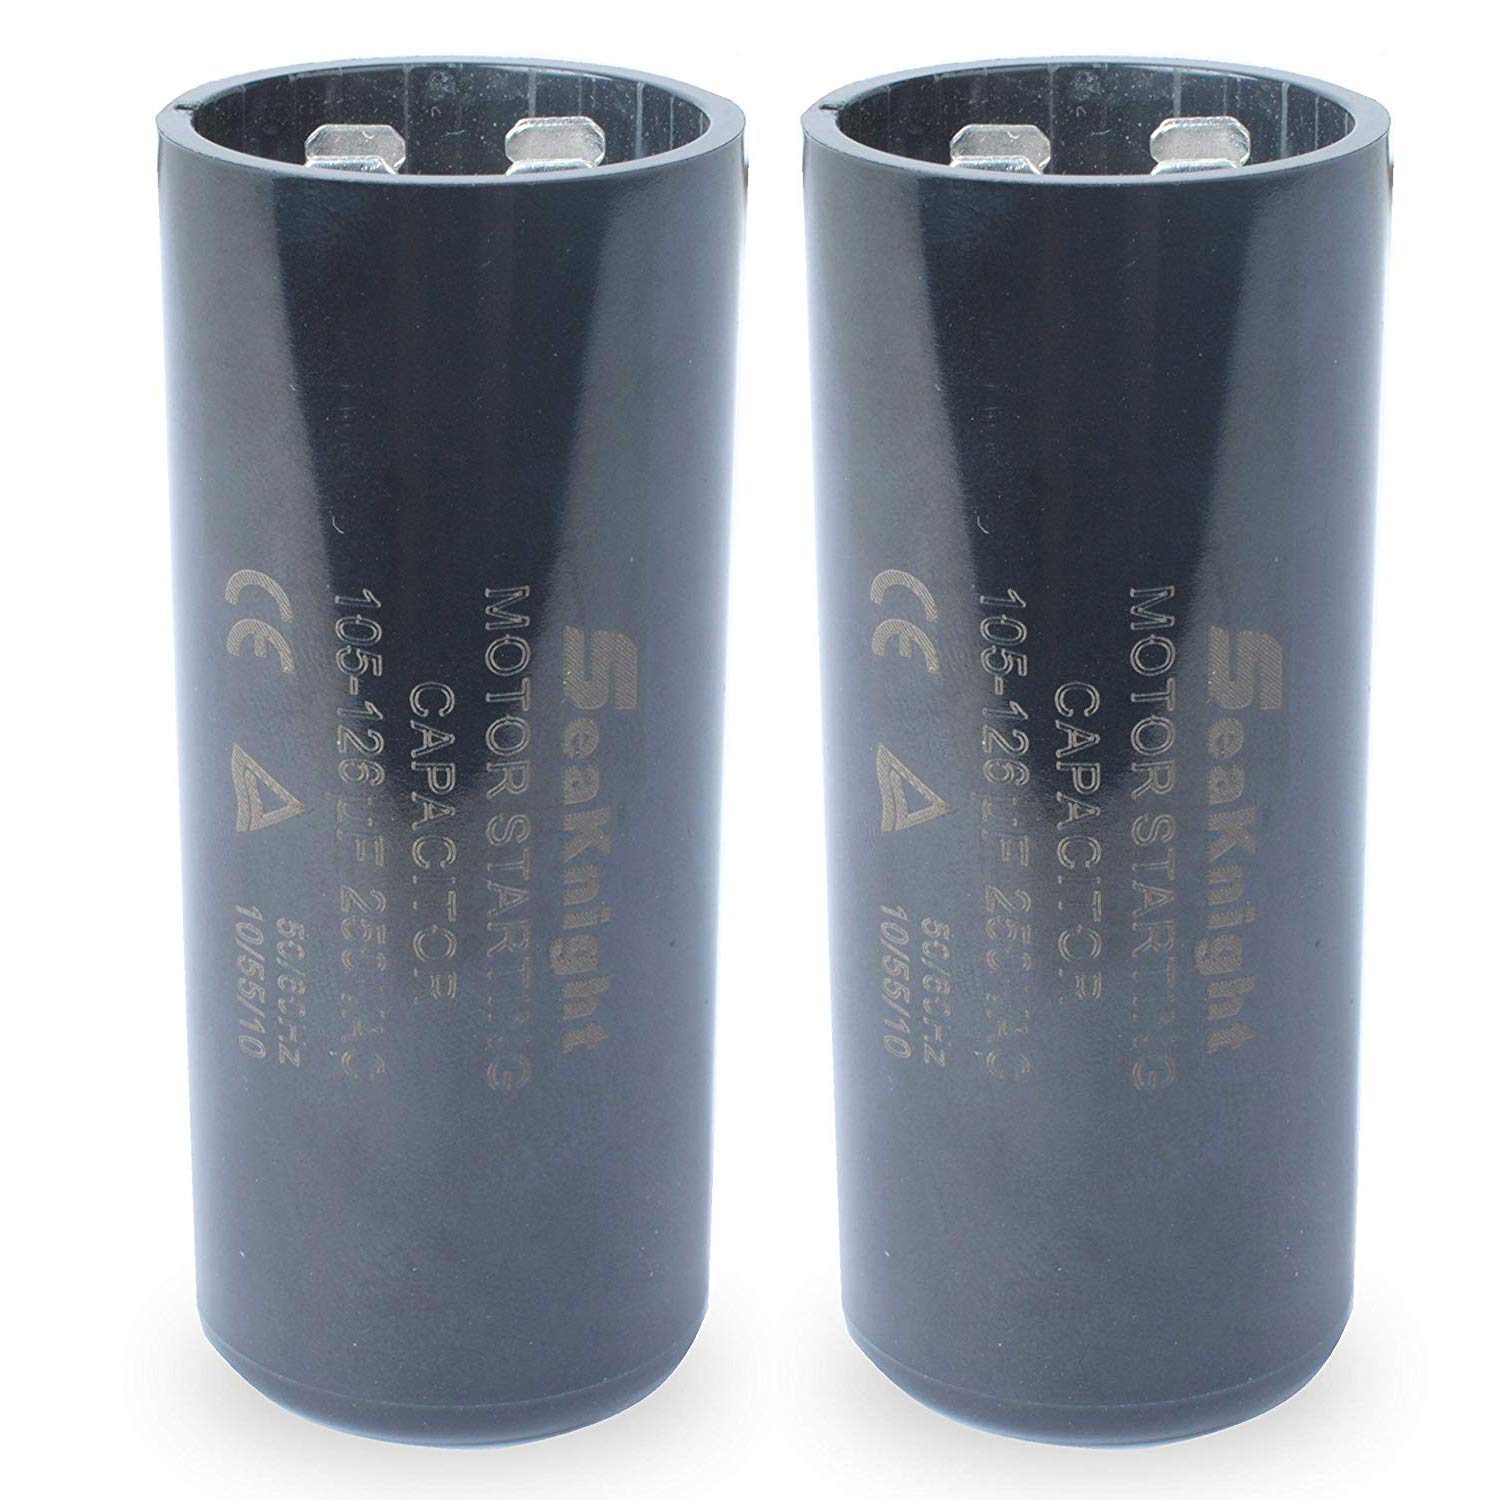 105-126 uf MFD Capacitor 220-250VAC,Motor Start Capacitor Replacement for Franklin 1HP, 1.5hp and 2HP Well Pump Control Box Pack of 2